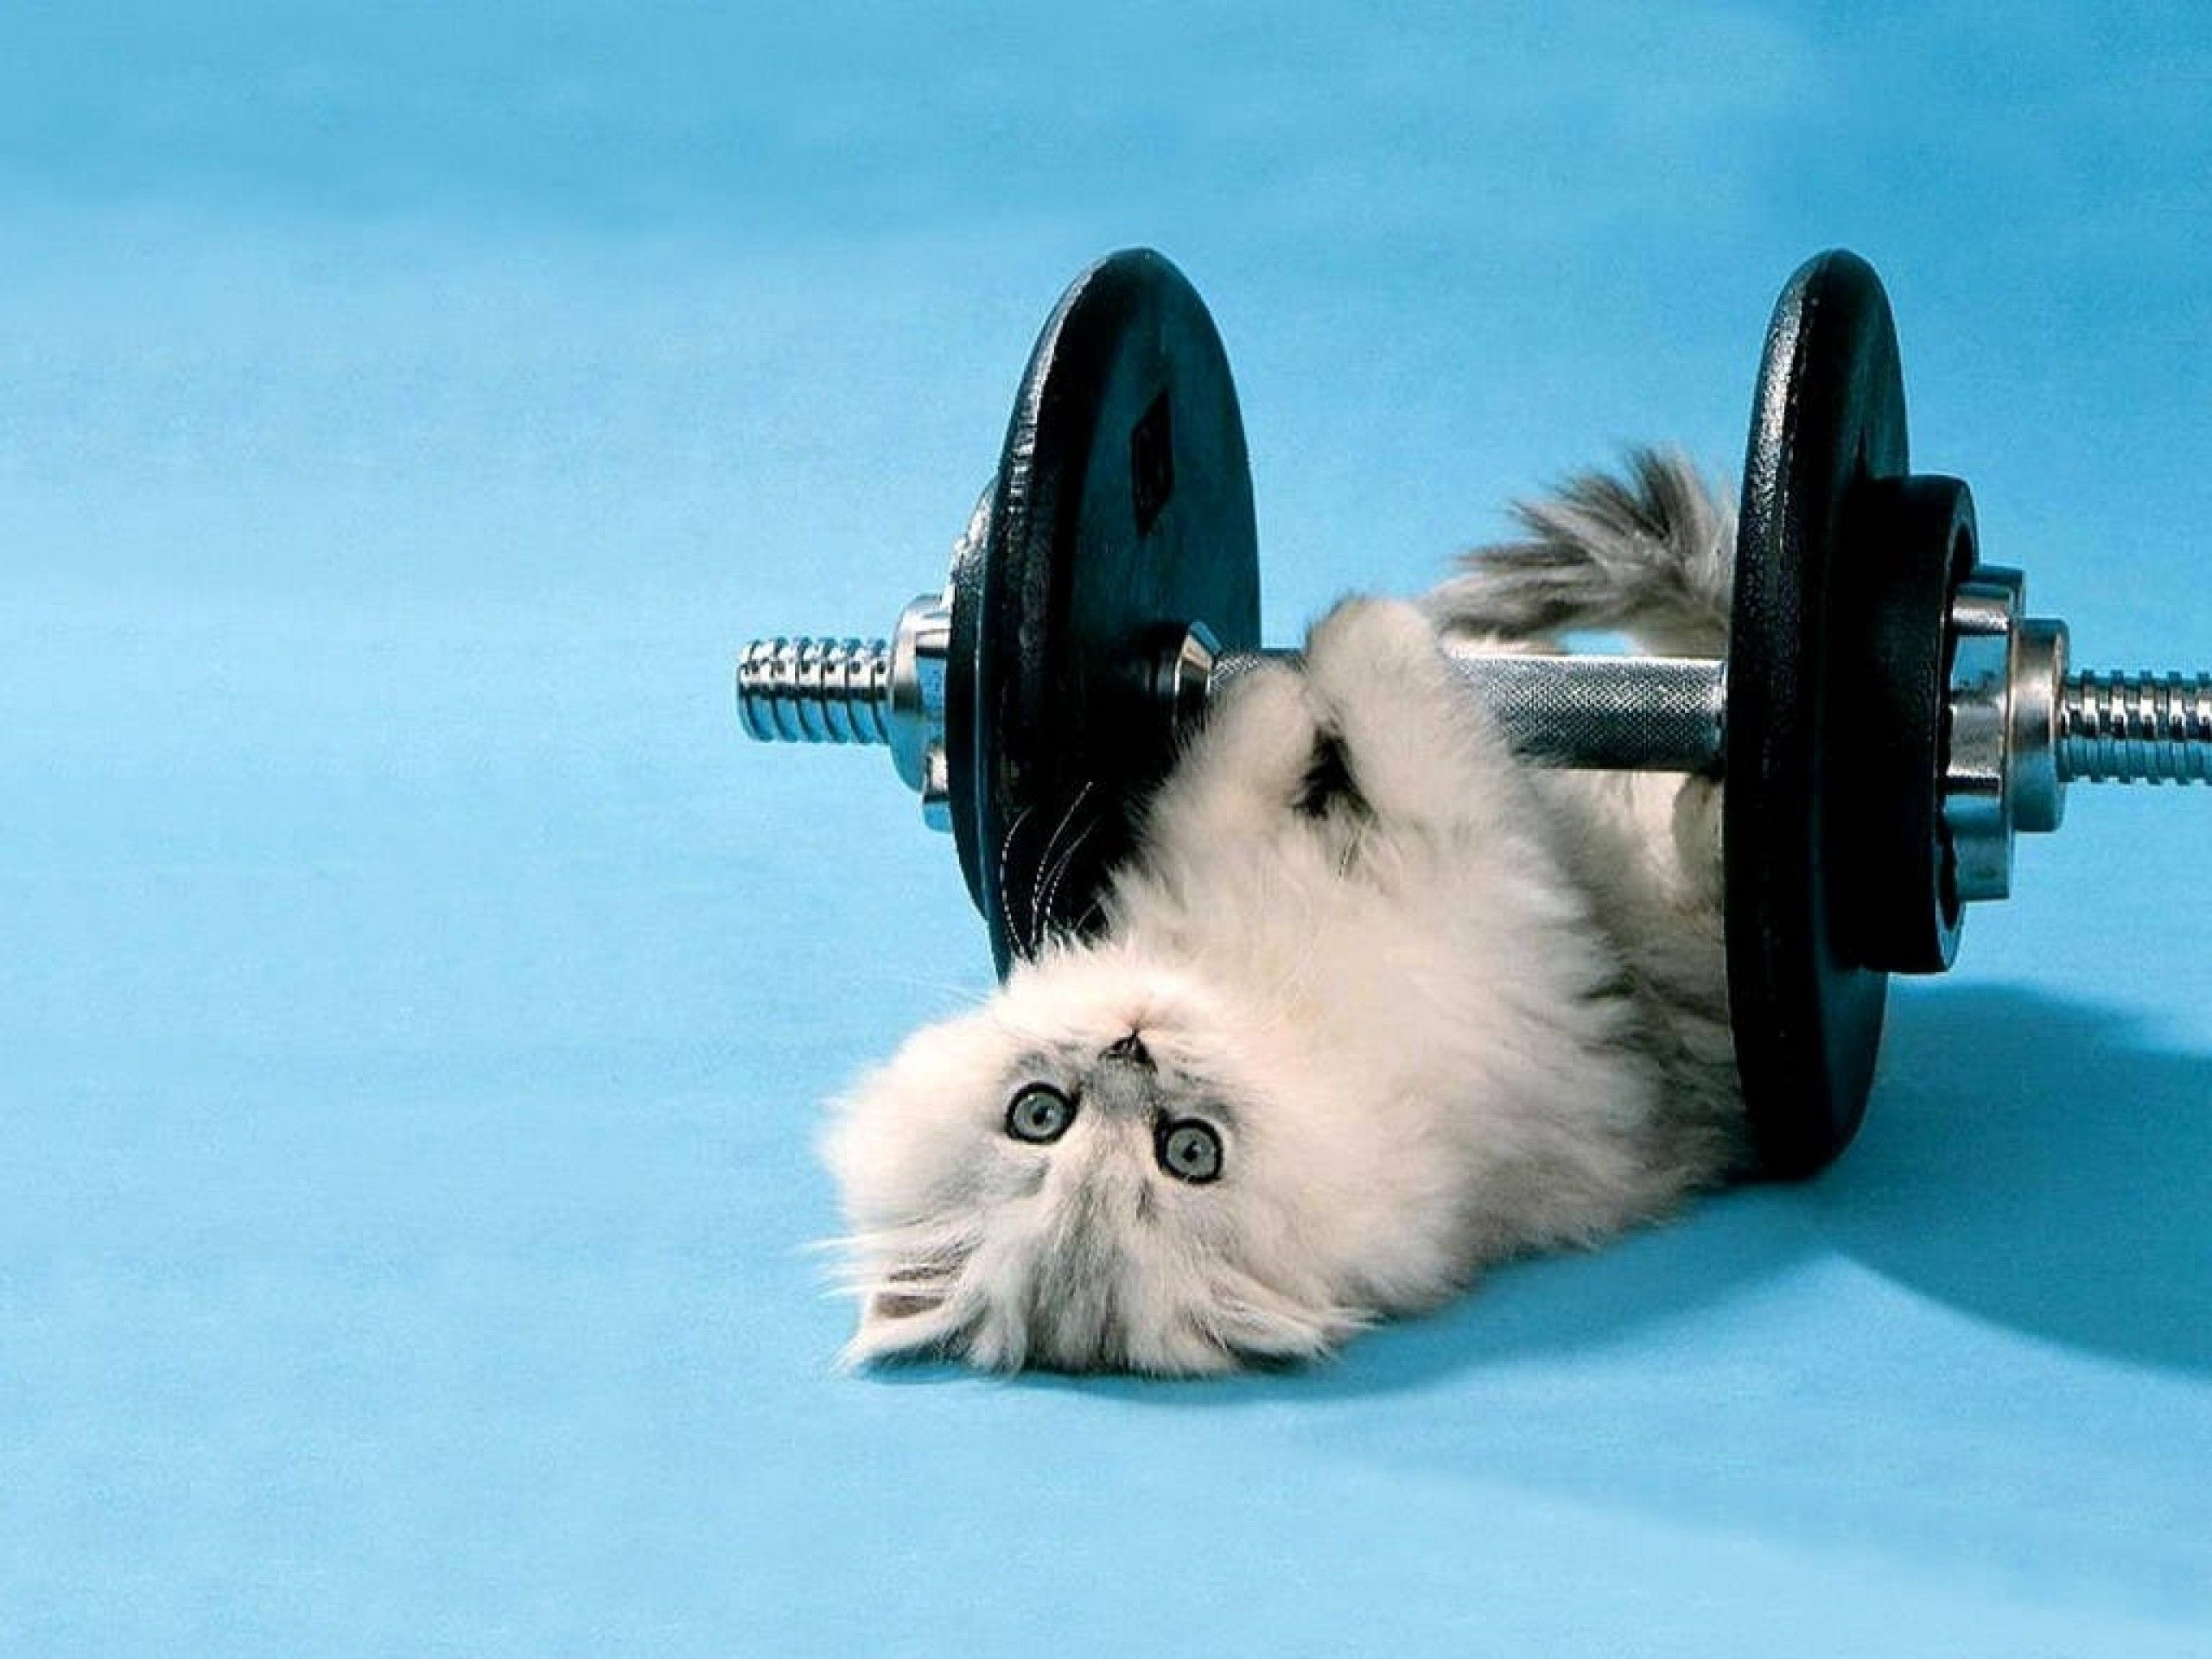 Fluffy Cat At The Gym Funny Animal Wallpapers Hd Wallpaper Download For Ipad And Iphone Widescreen 2160p Uhd 4k Hd Cat Exercise How To Stay Healthy Fitness